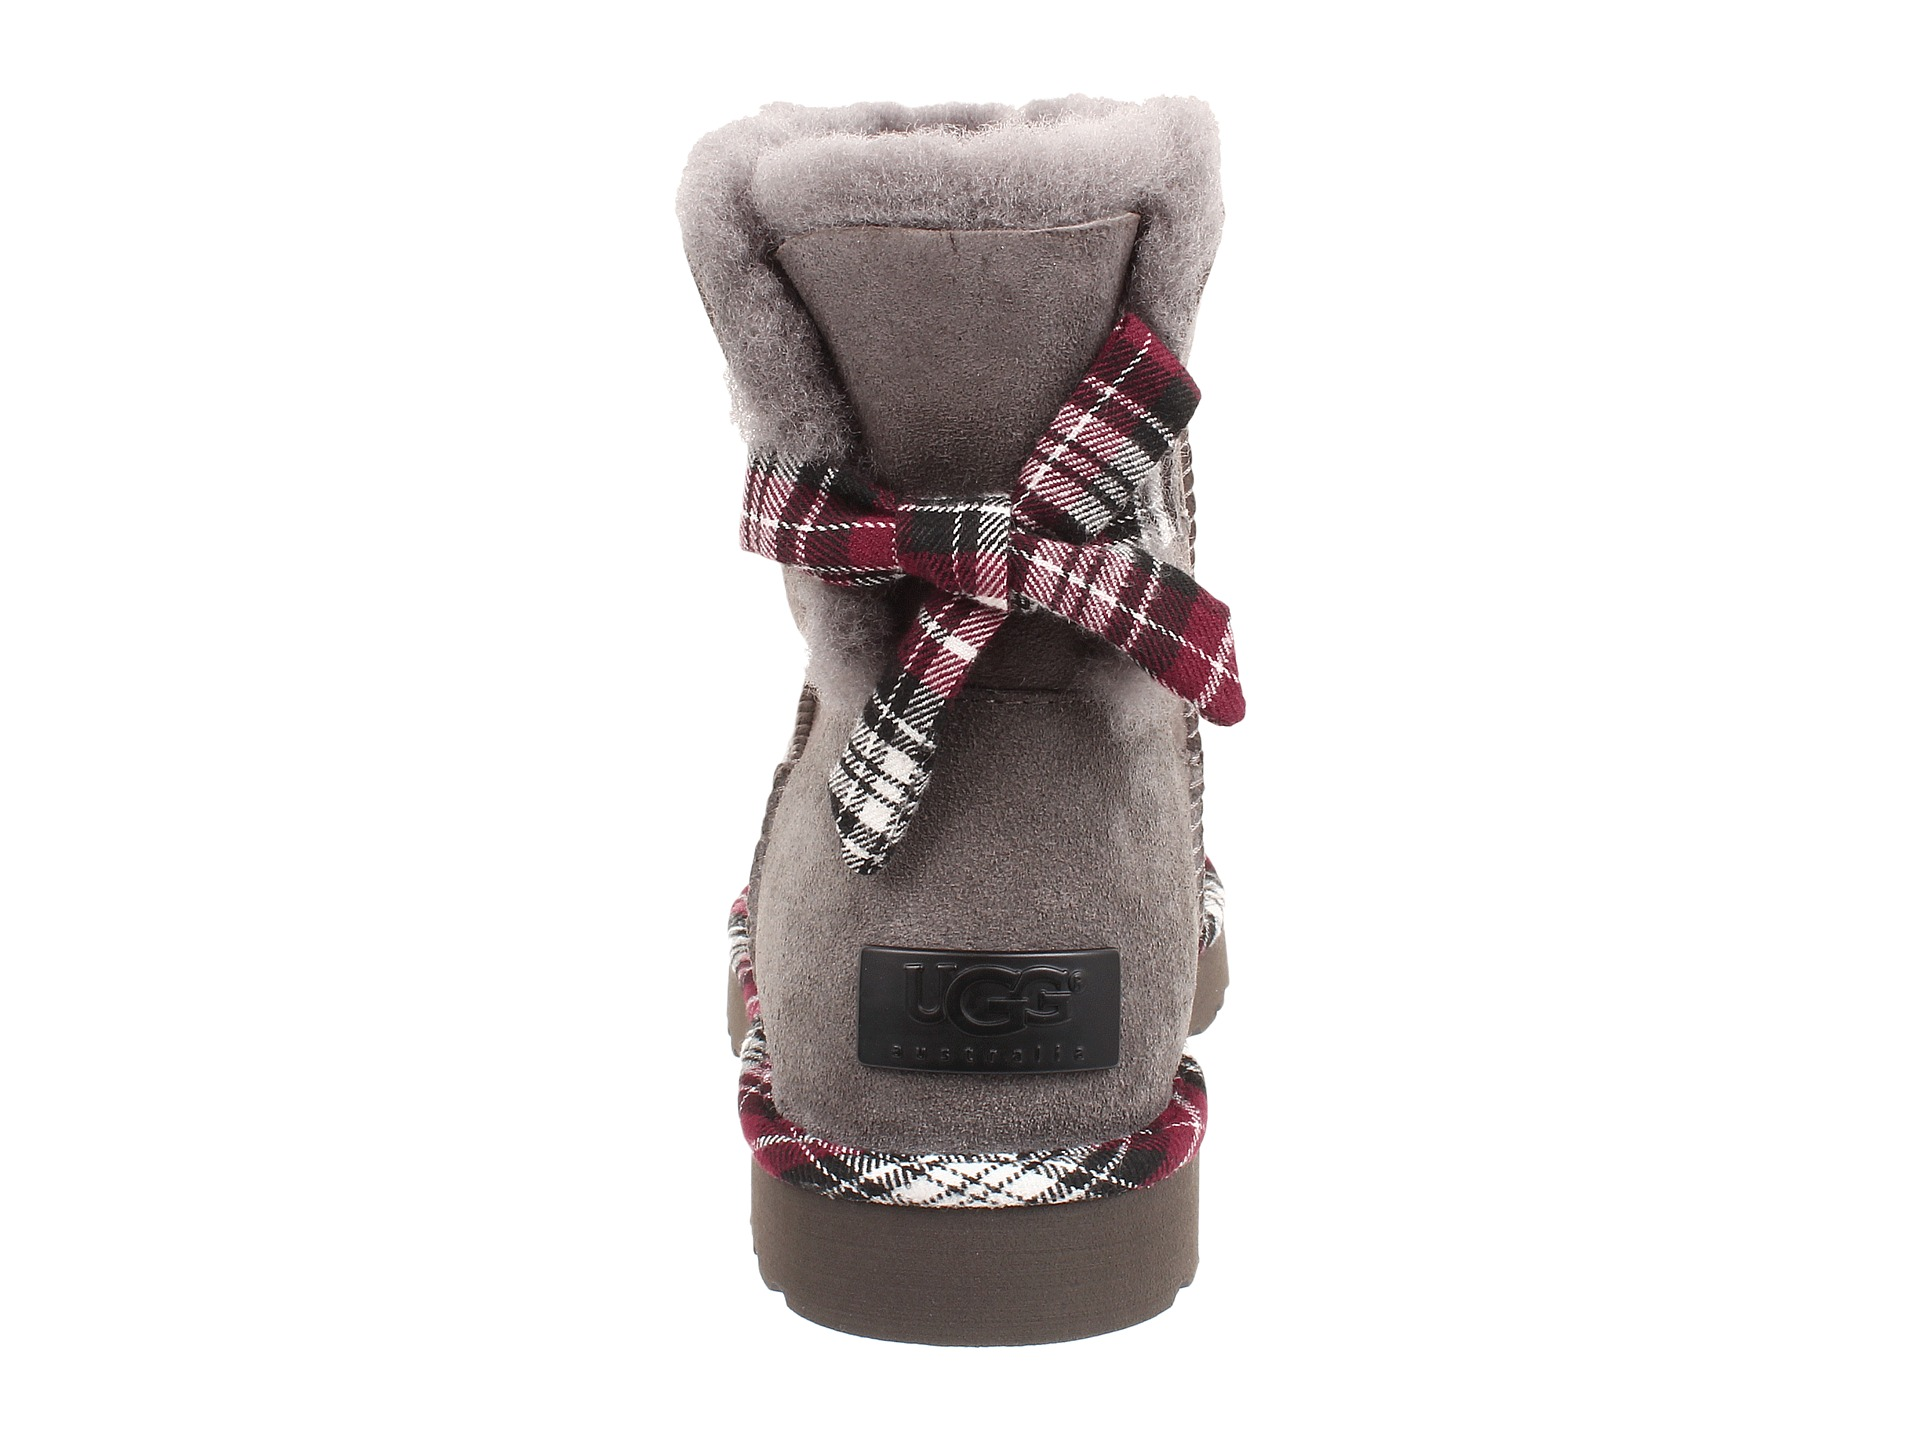 c1d30d50e7c Ugg Boots With Plaid On Back - cheap watches mgc-gas.com